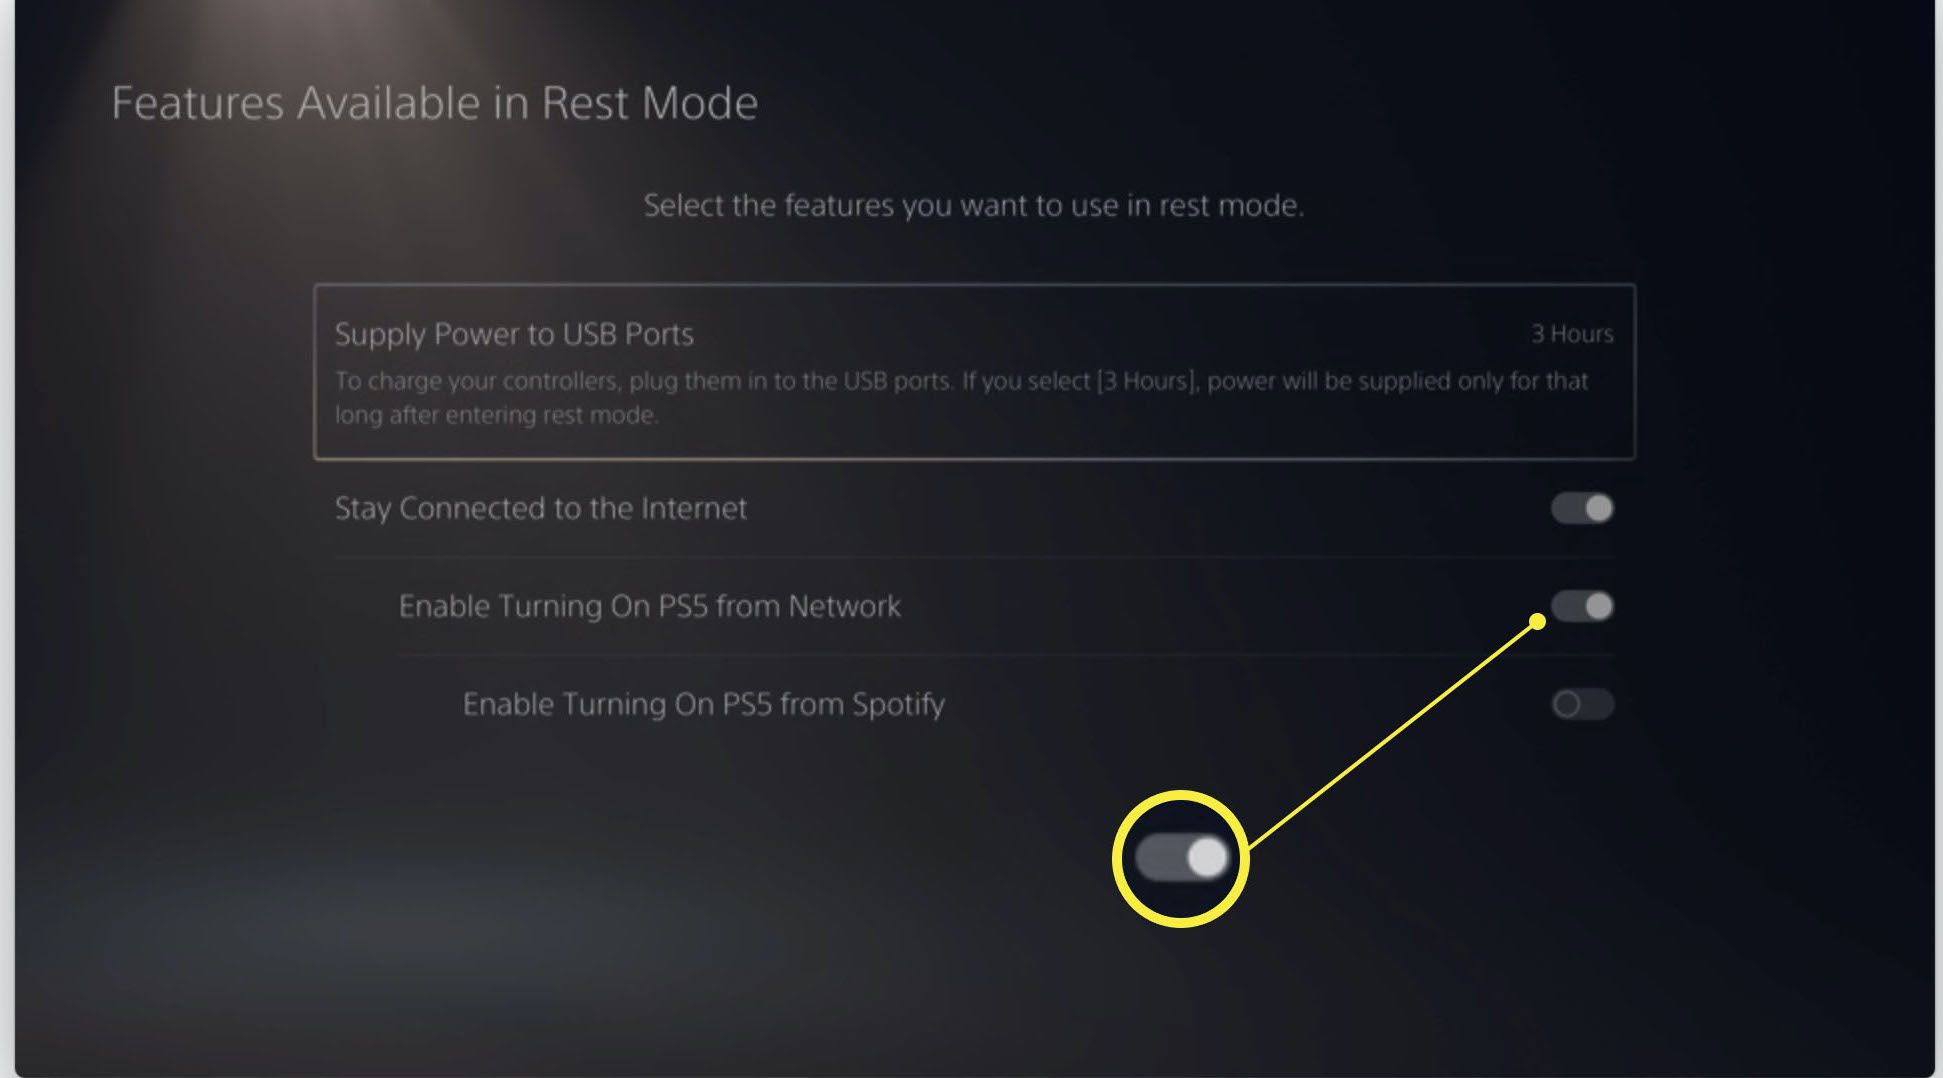 Playstation 5 power saving settings with Stay Connected to the Internet and Enable Turning on PS5 from Network highlighted